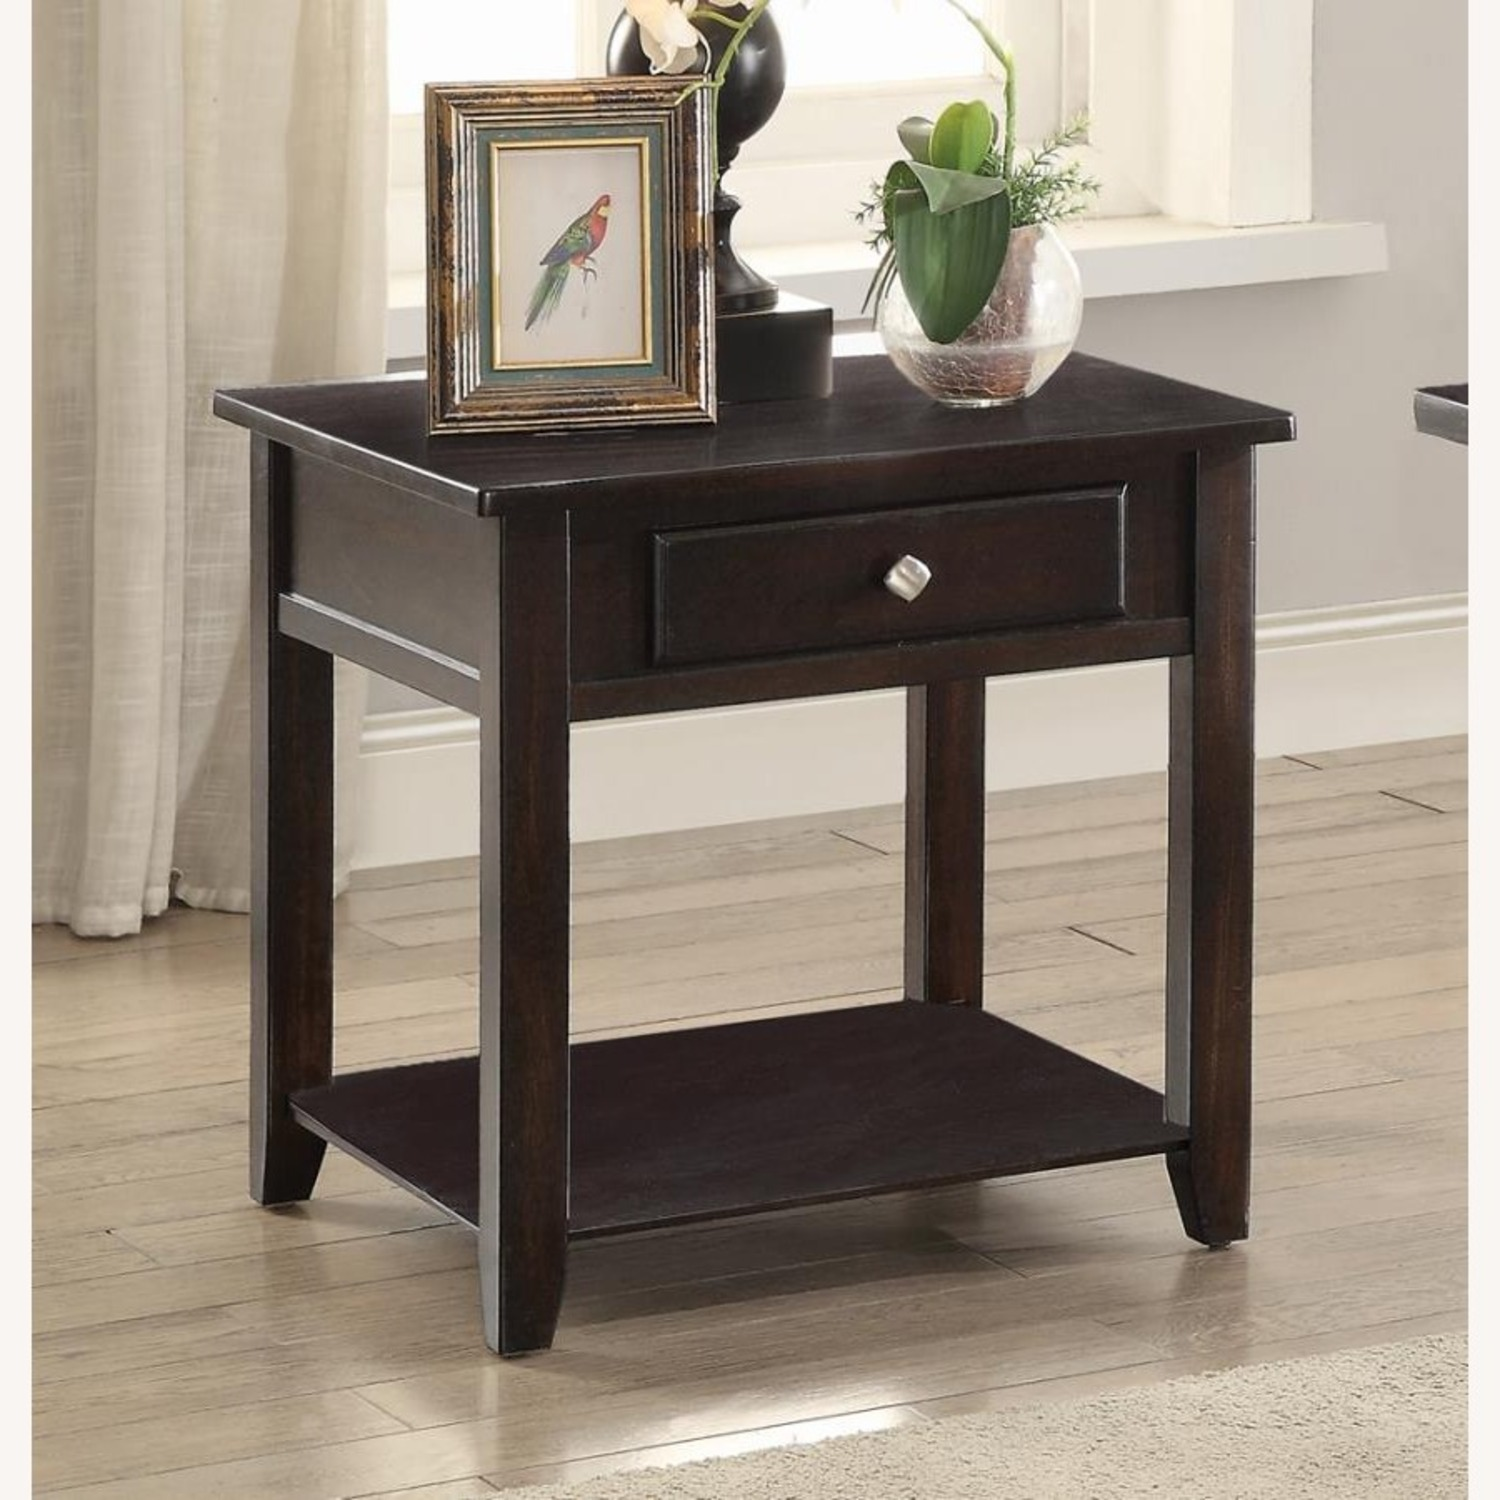 End Table In A Rich Warm Walnut Finish - image-1